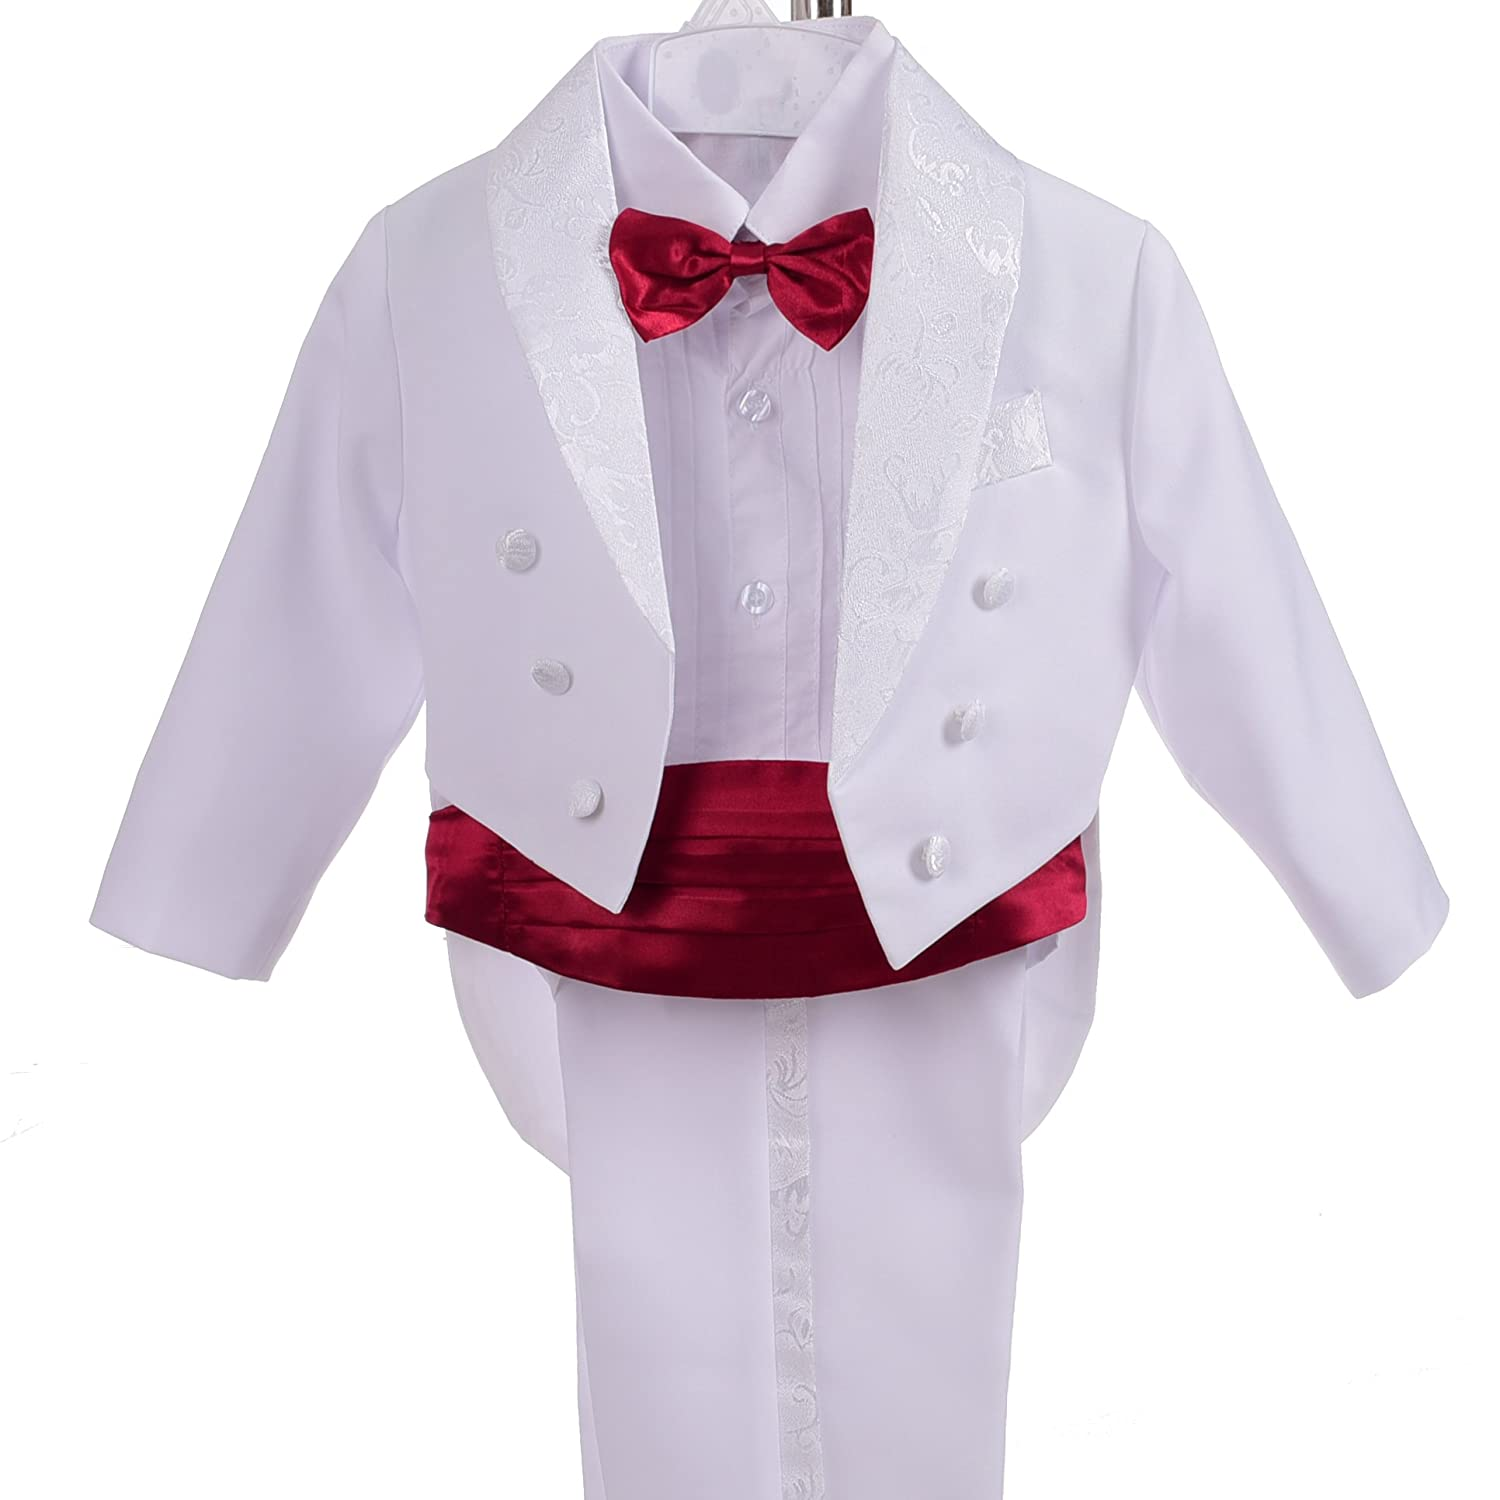 Dressy Daisy Boys' Classic Tuxedo w/Tail 5 Pcs Set Formal Suits Wedding Outfit 001